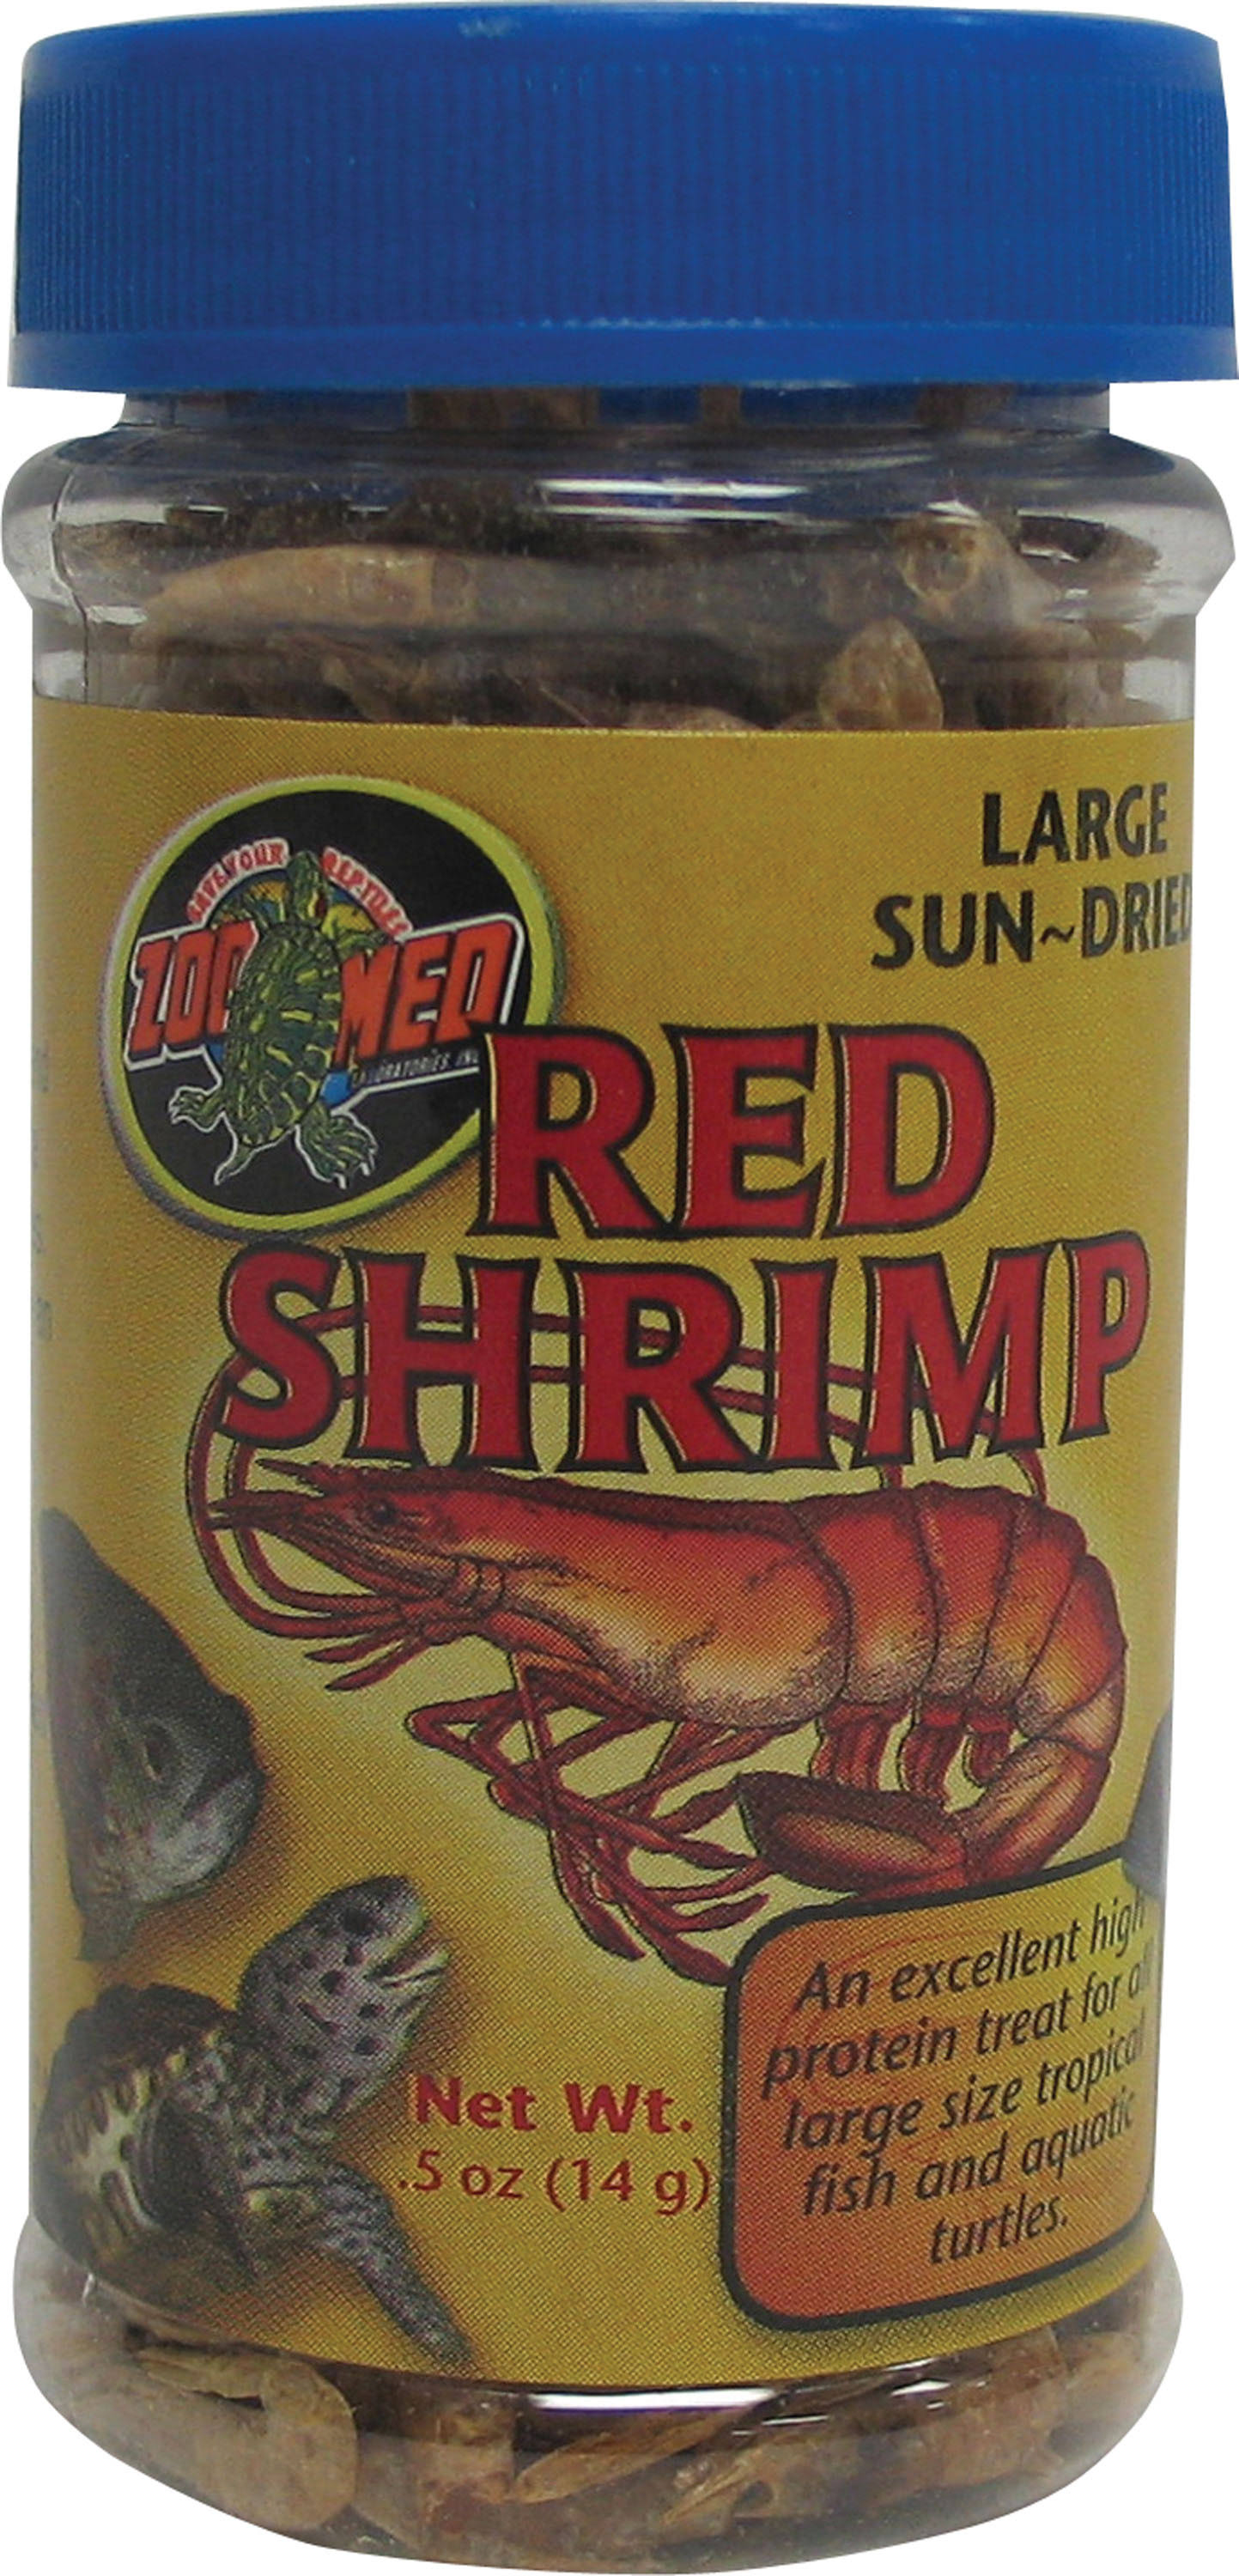 Zoo Med Red Dried Shrimp Food - Large, 14g